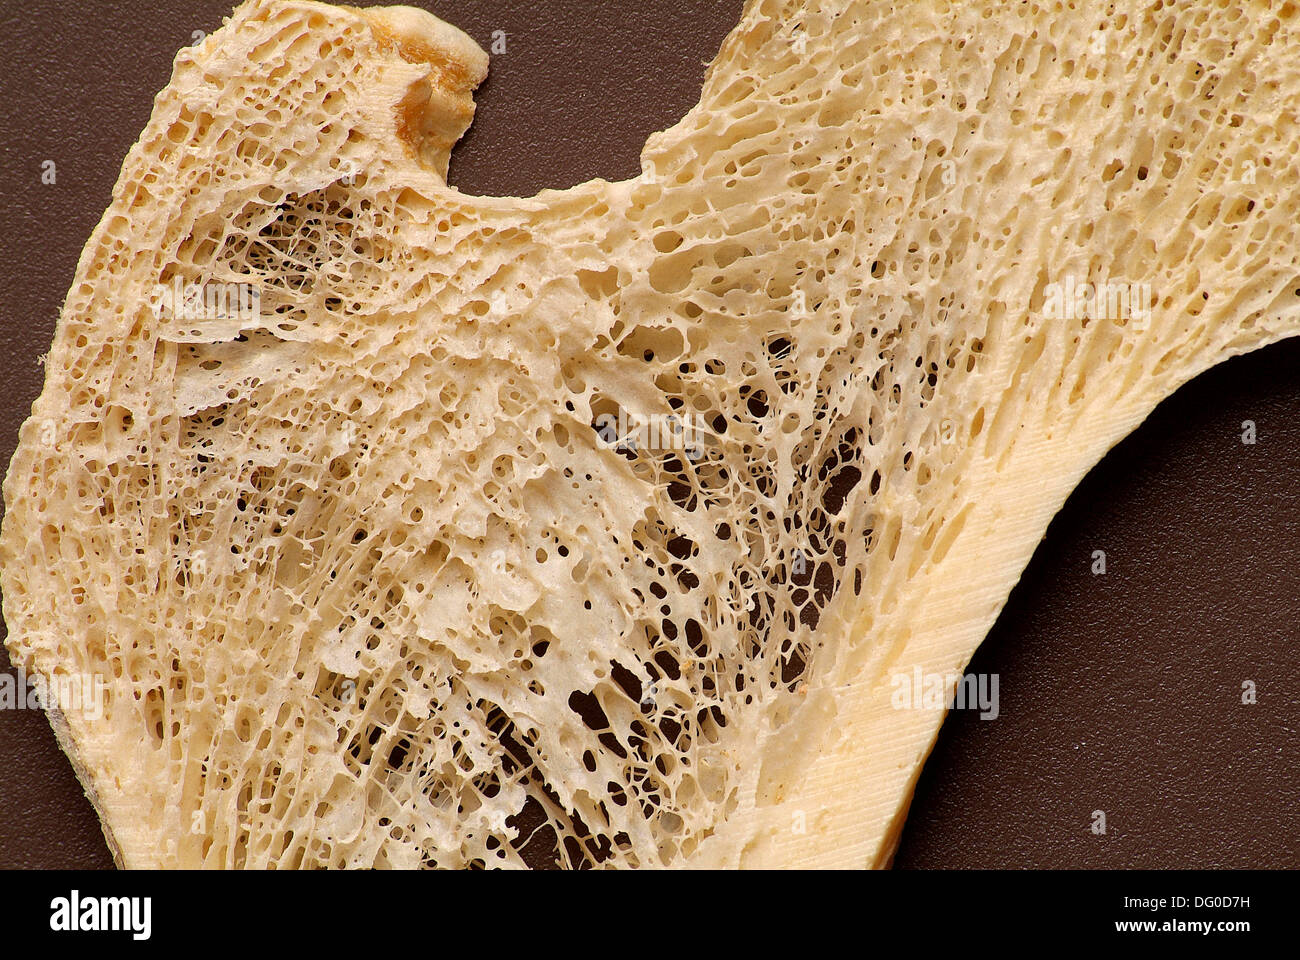 Upper Femur, frontal longitudinal midsection, calcium deposition, trabecular, cortical, anatomy anatomy, zoology - Stock Image